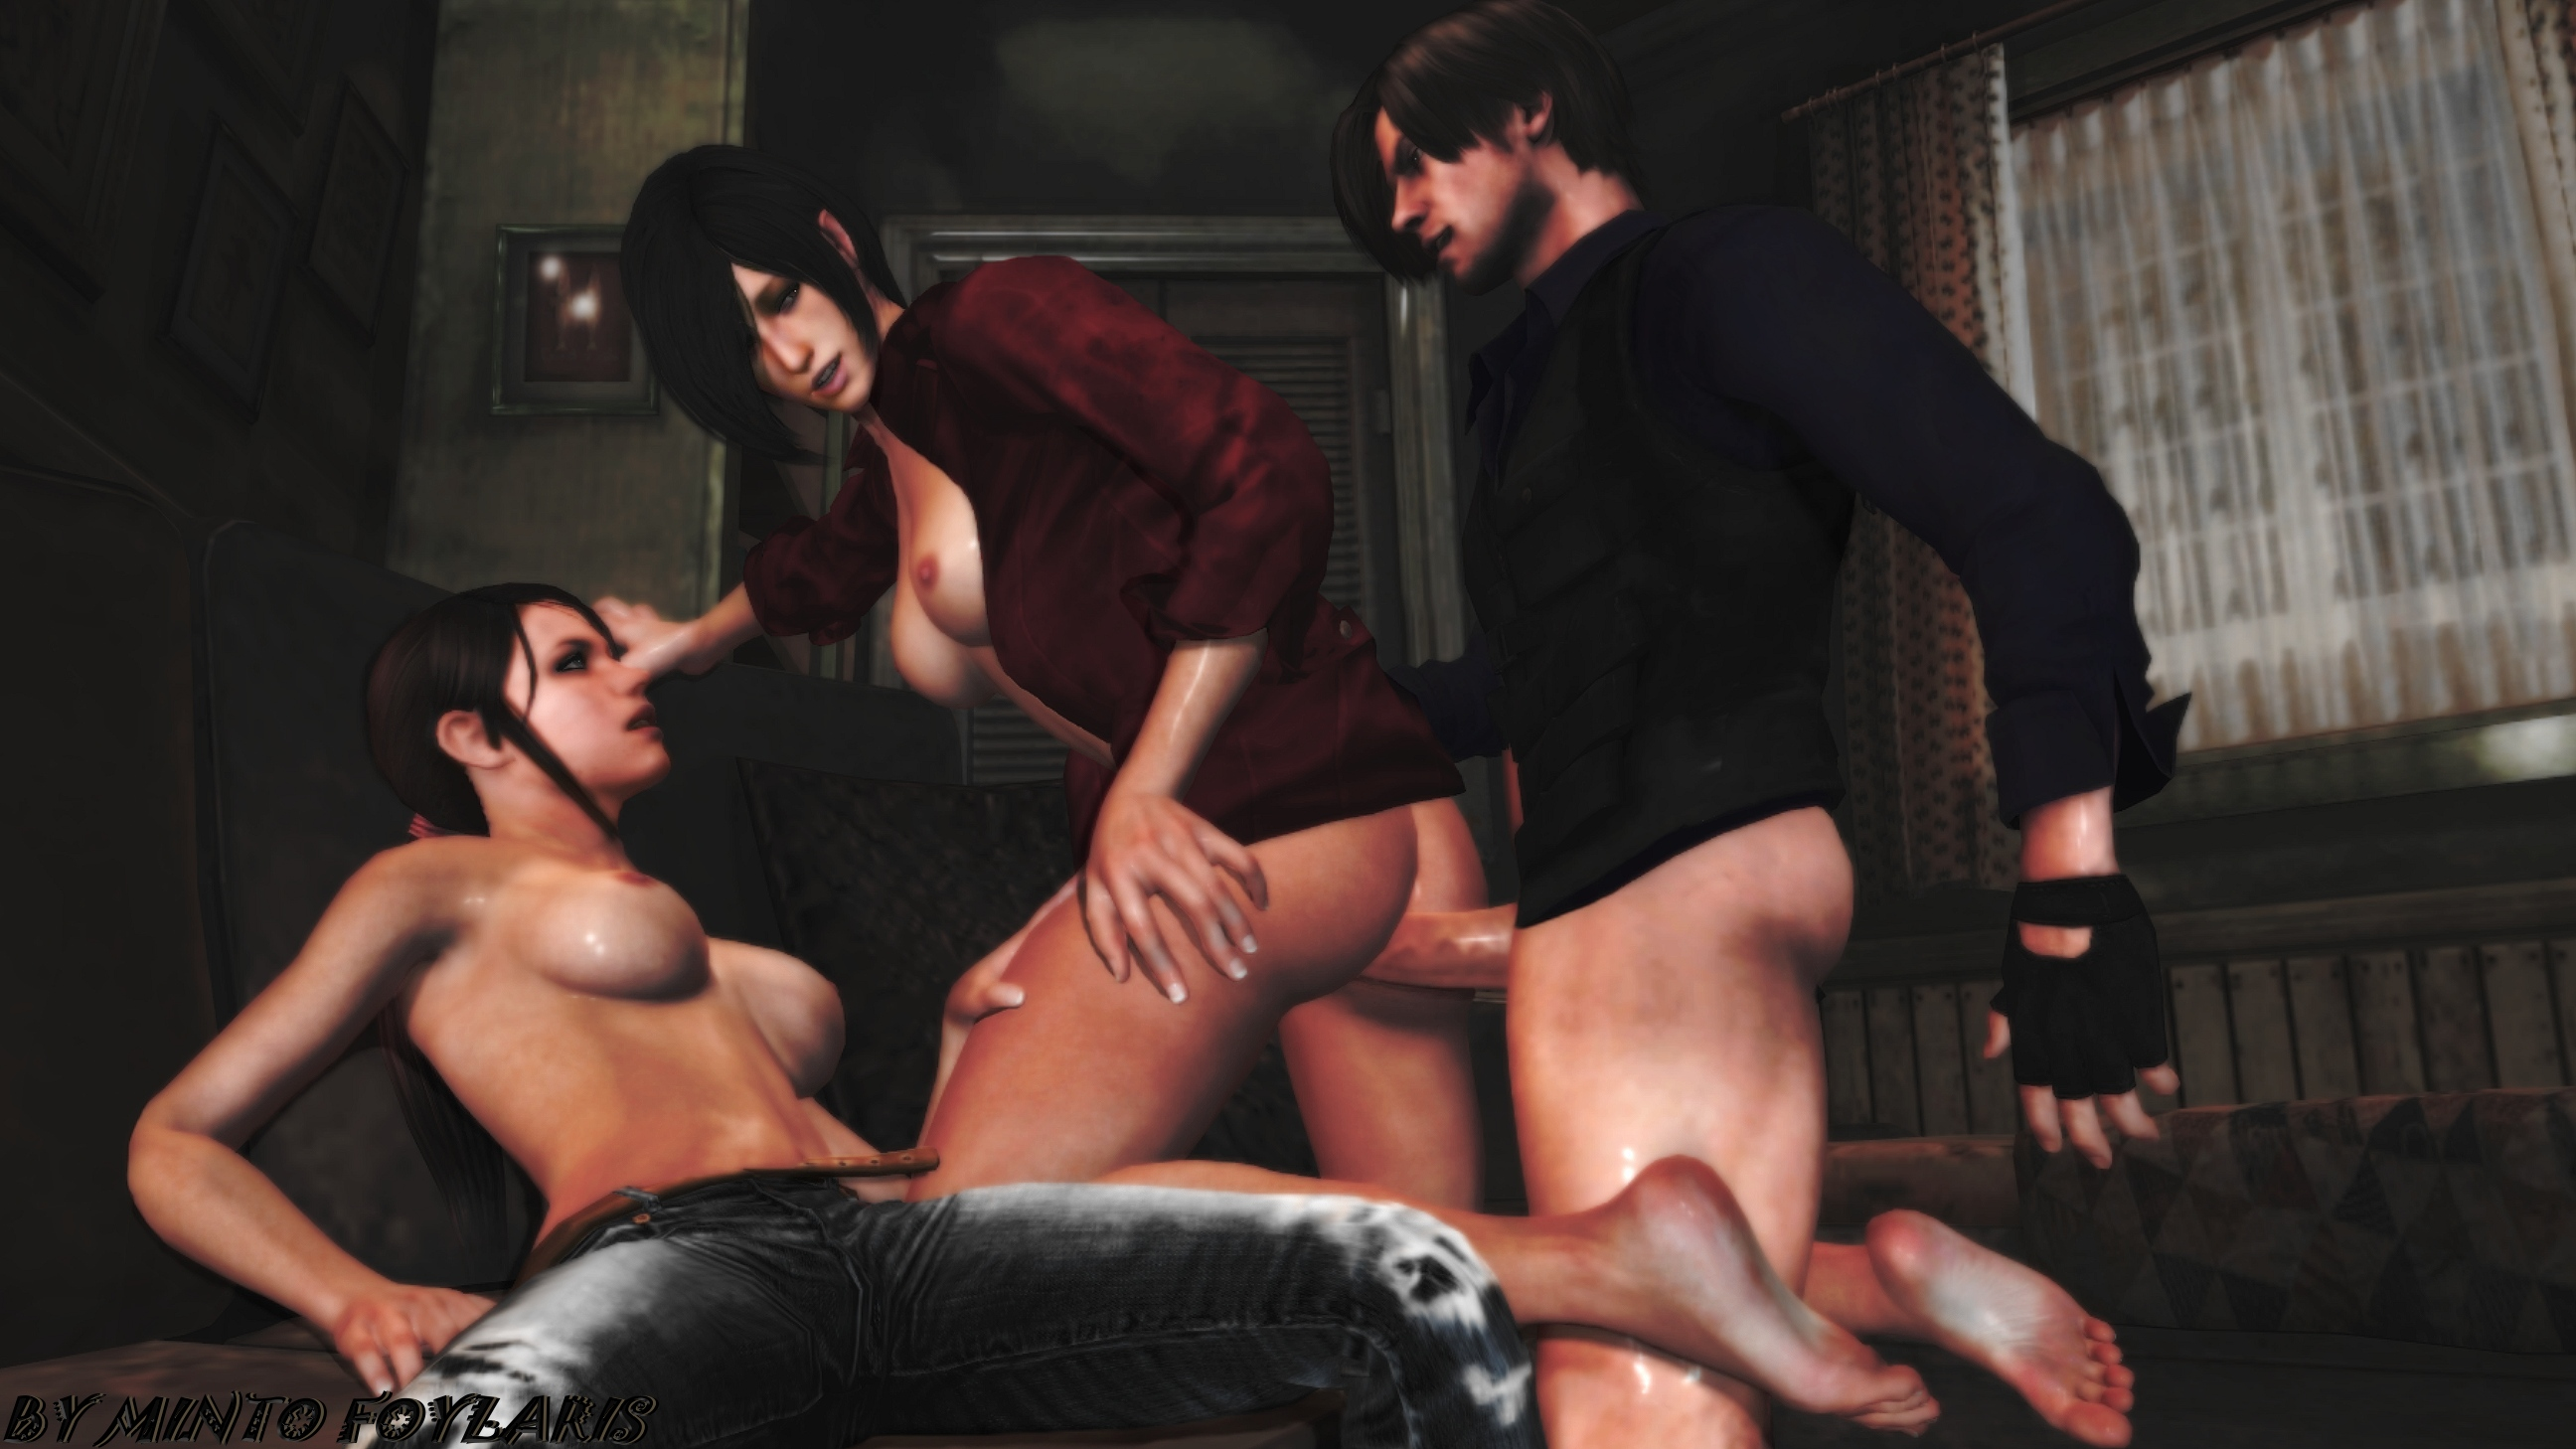 Hot resident evil lesbian porno video erotic download